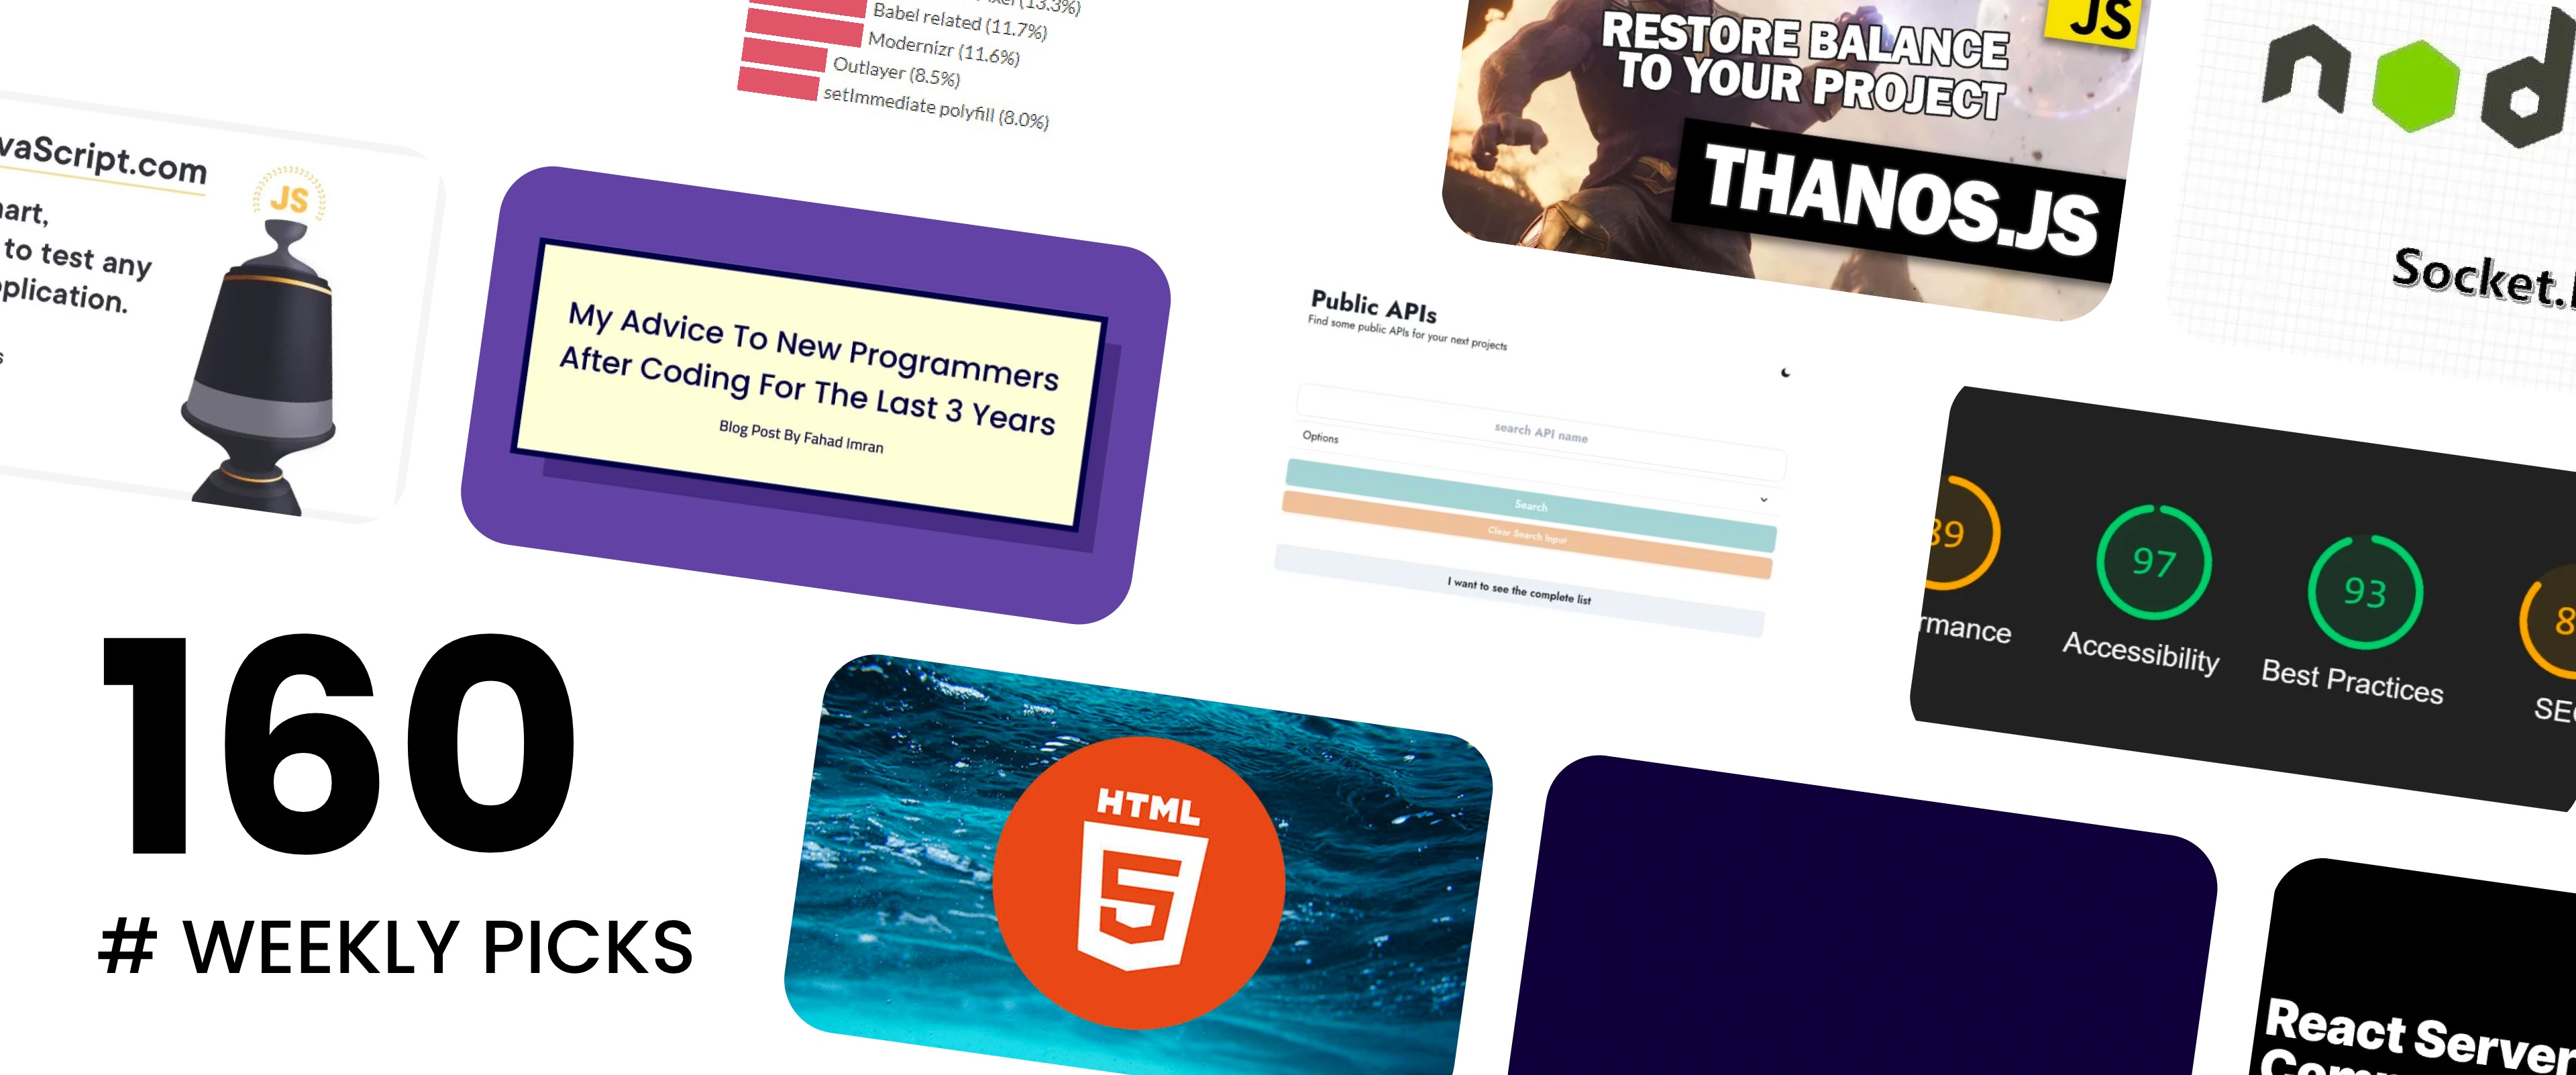 🔥 What's Hot in Web Development? — Weekly Picks #160